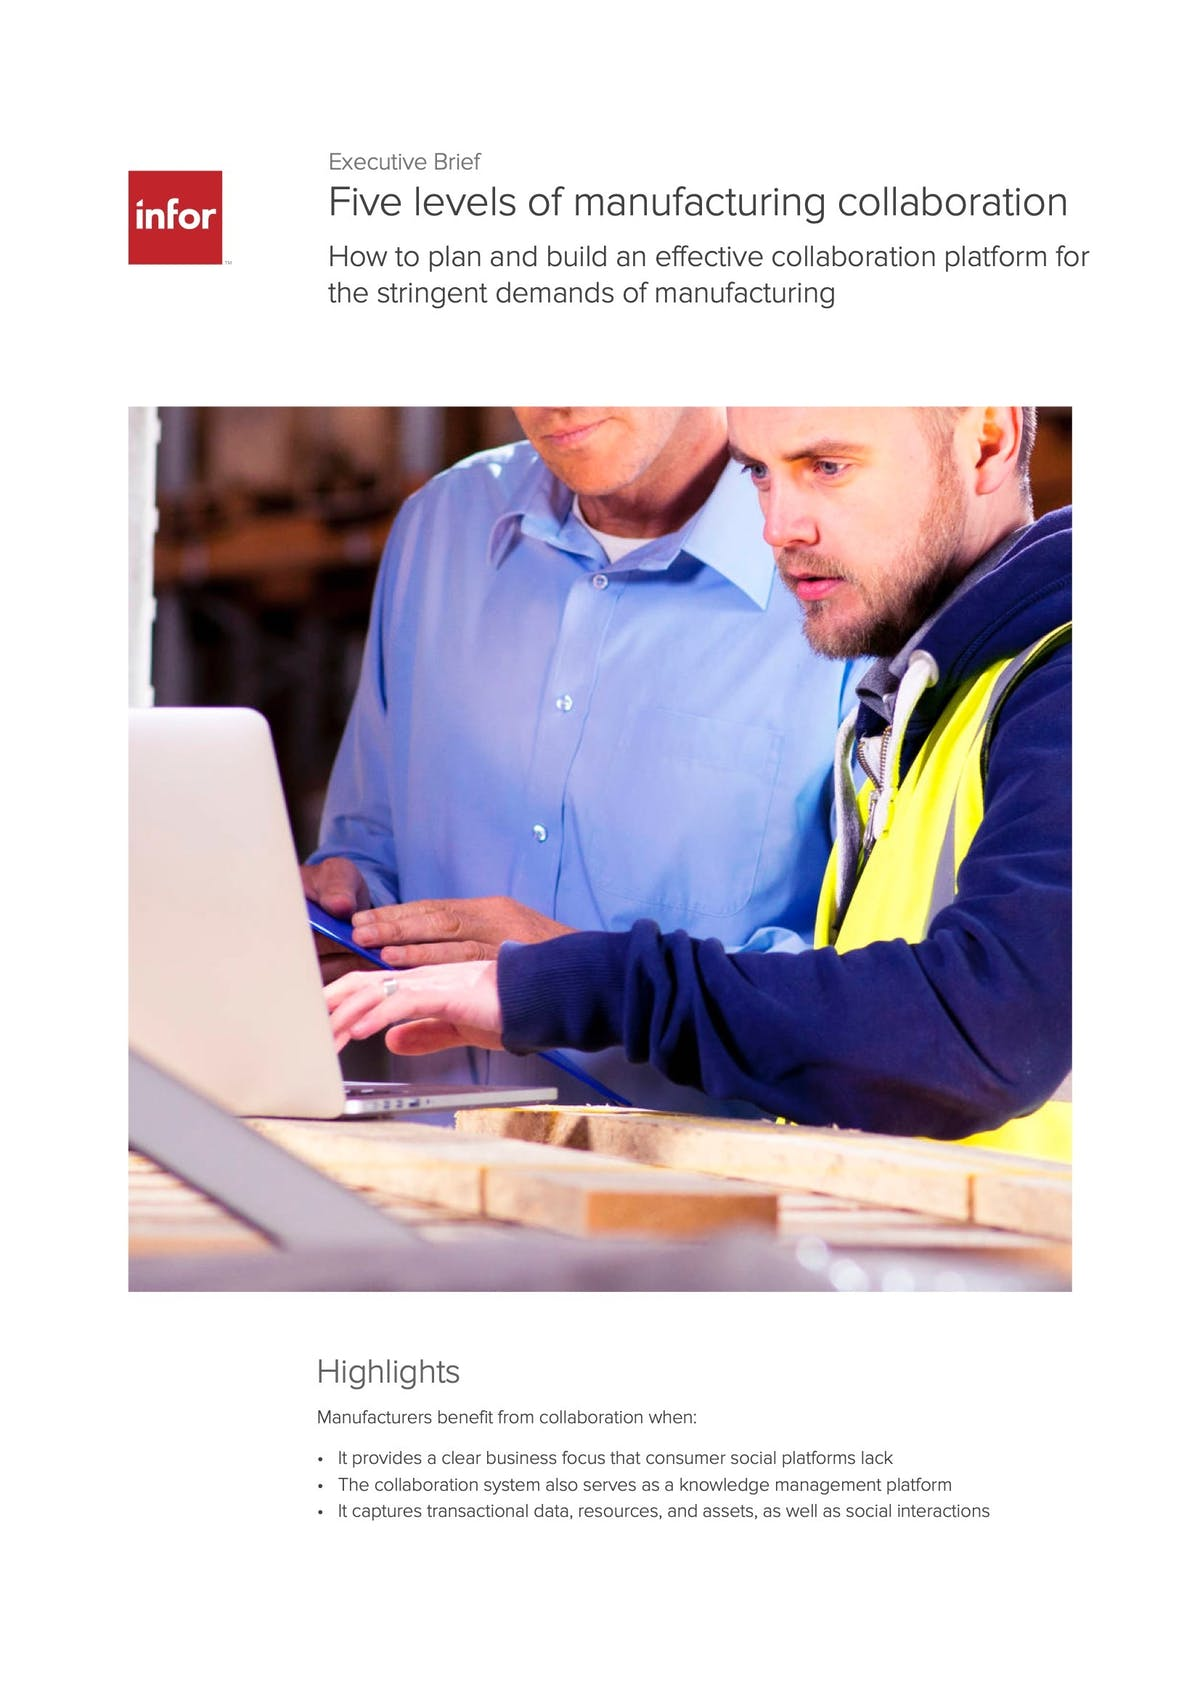 Infor CloudSuite Industrial (Syteline) White Paper - Five Levels of Manufacturing Collaboration